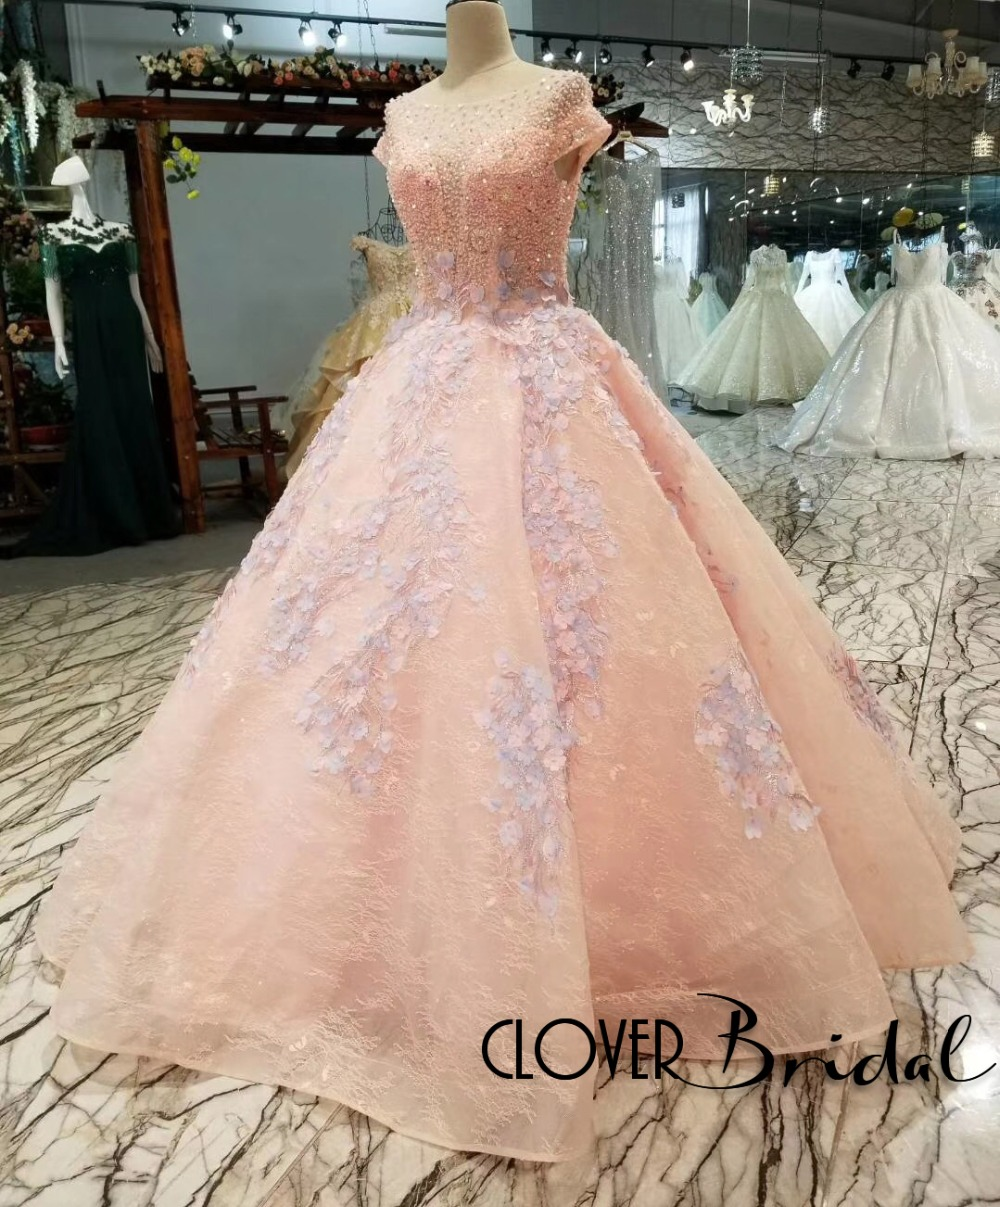 CloverBridal 2018 Latest Romantic Luxury beaded handmade flowers Floor Length Pink  Lace Ball Gown Corset Keyhole back